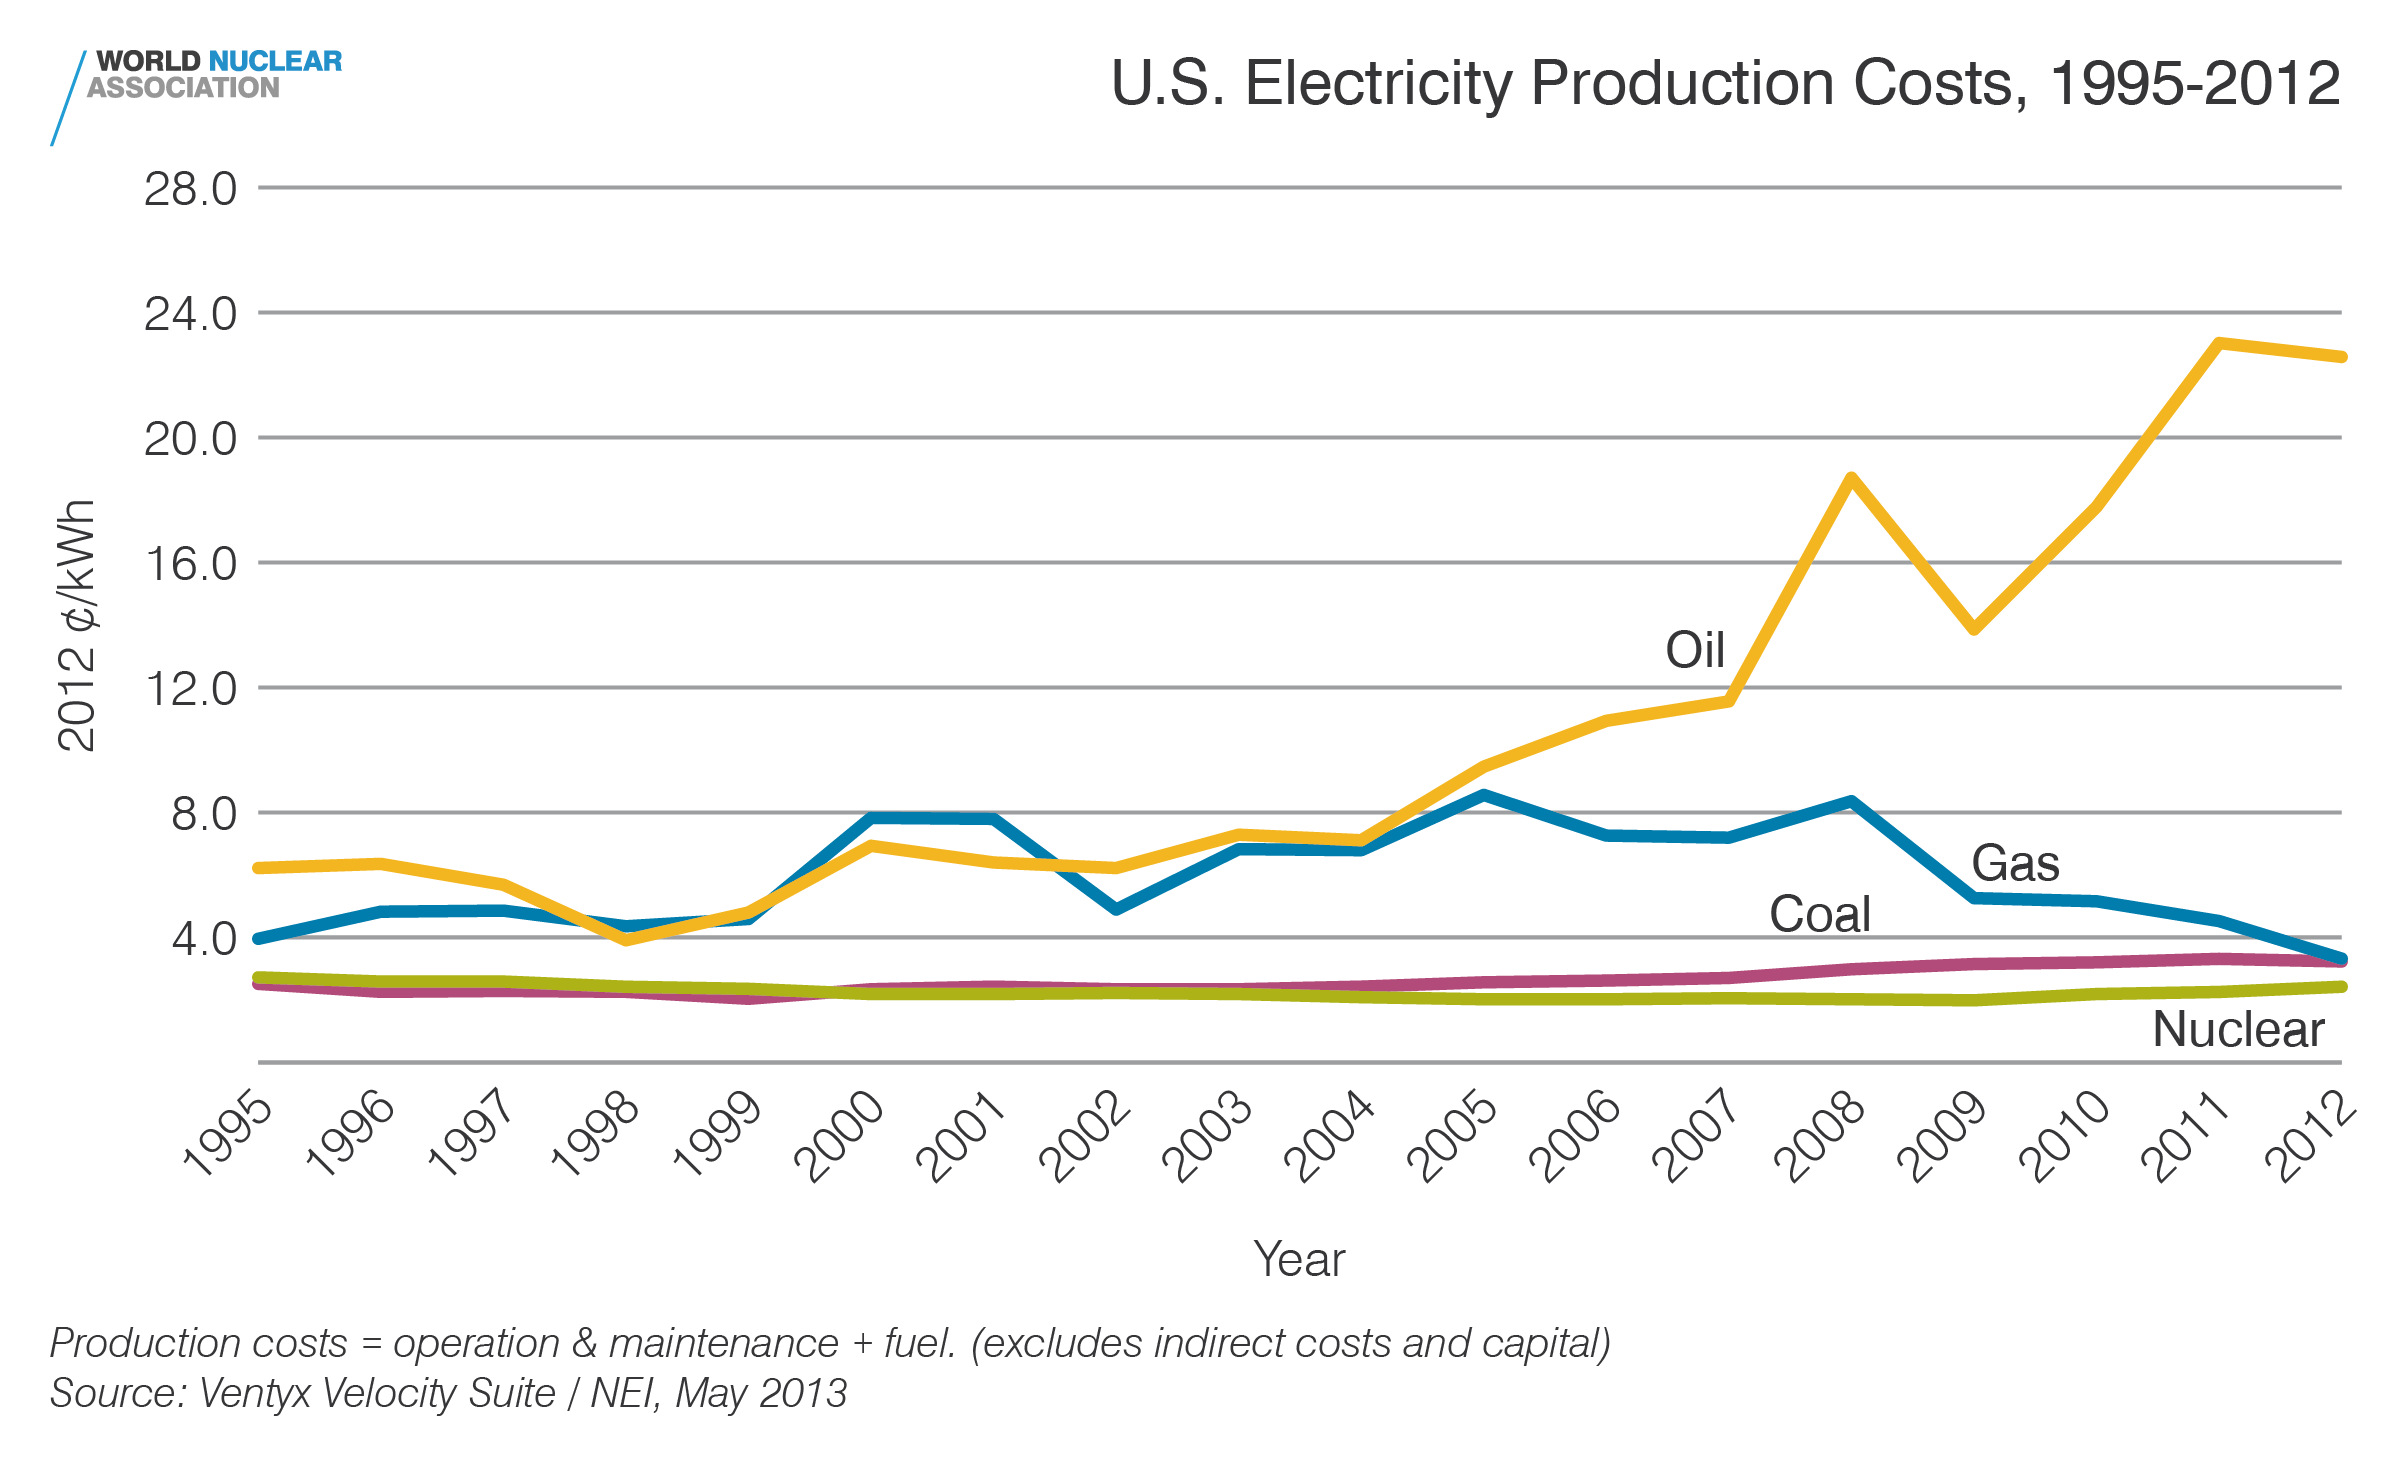 US electricity production costs